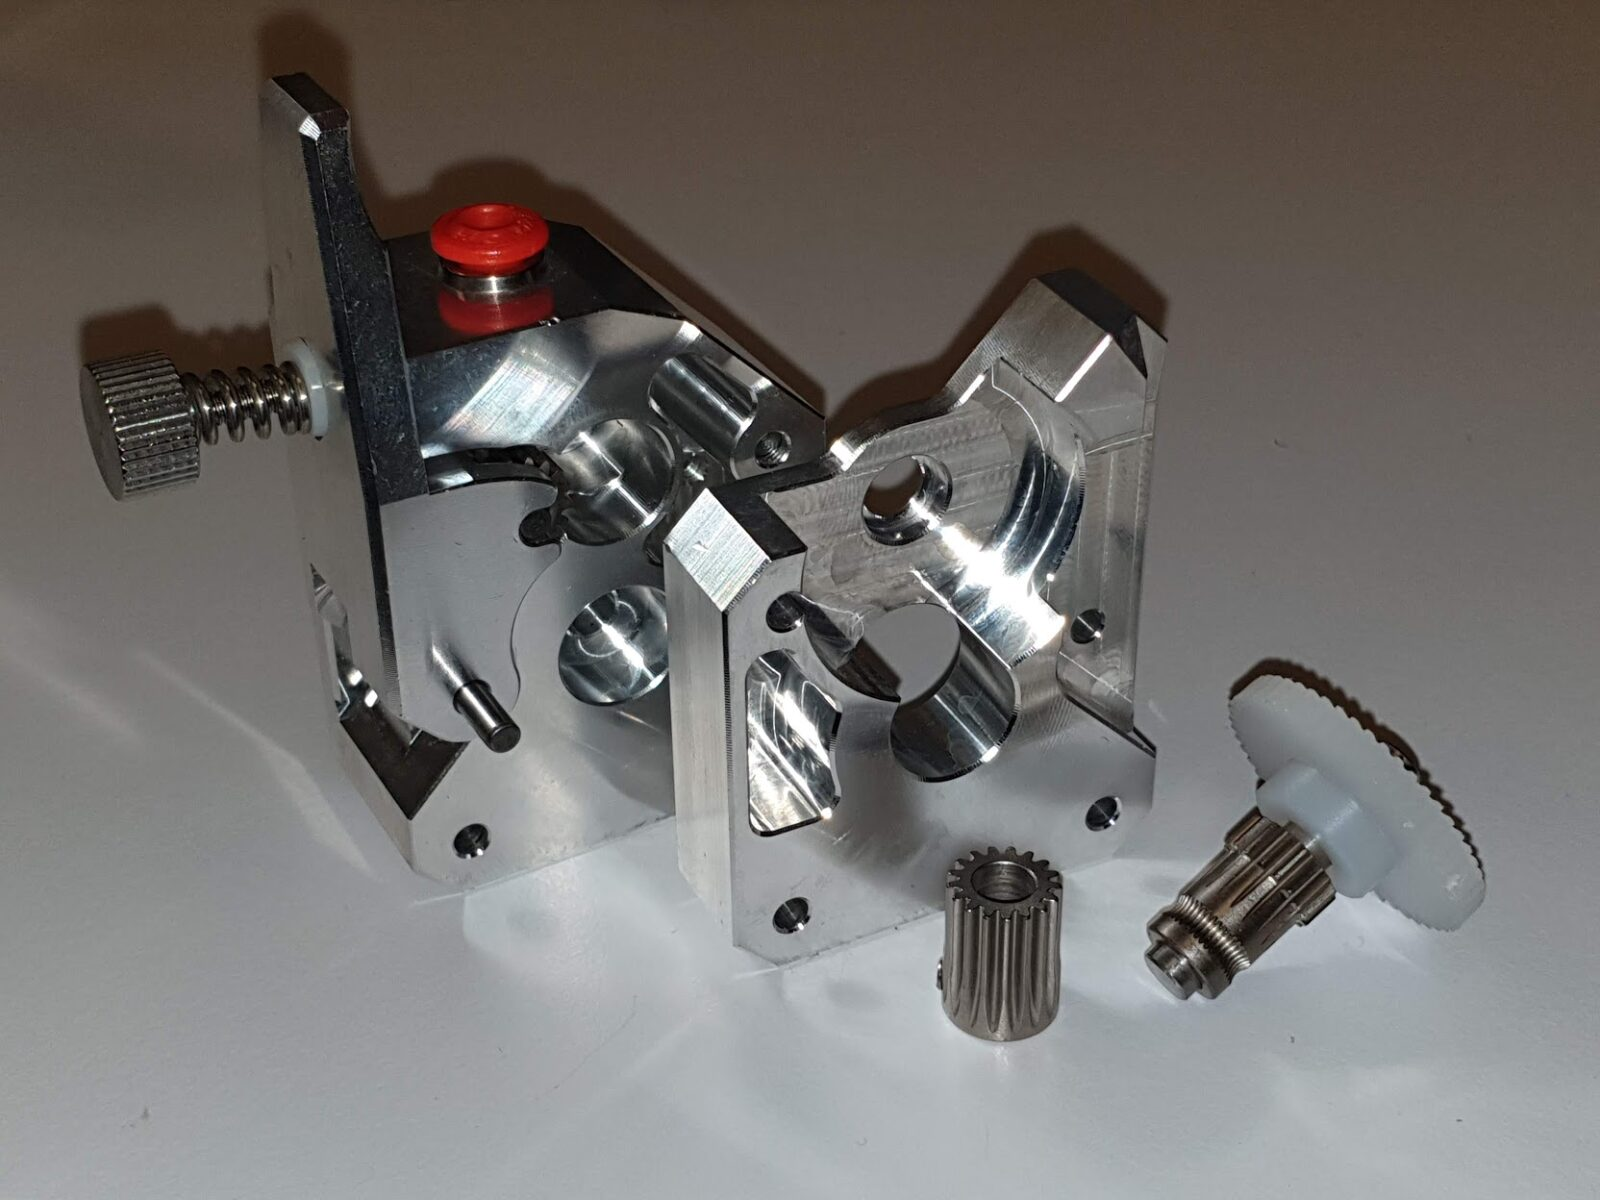 All Metal BMG Direct Drive Extruder 8 | All-Metal BMG Direct Drive Extruder - My New Favorite